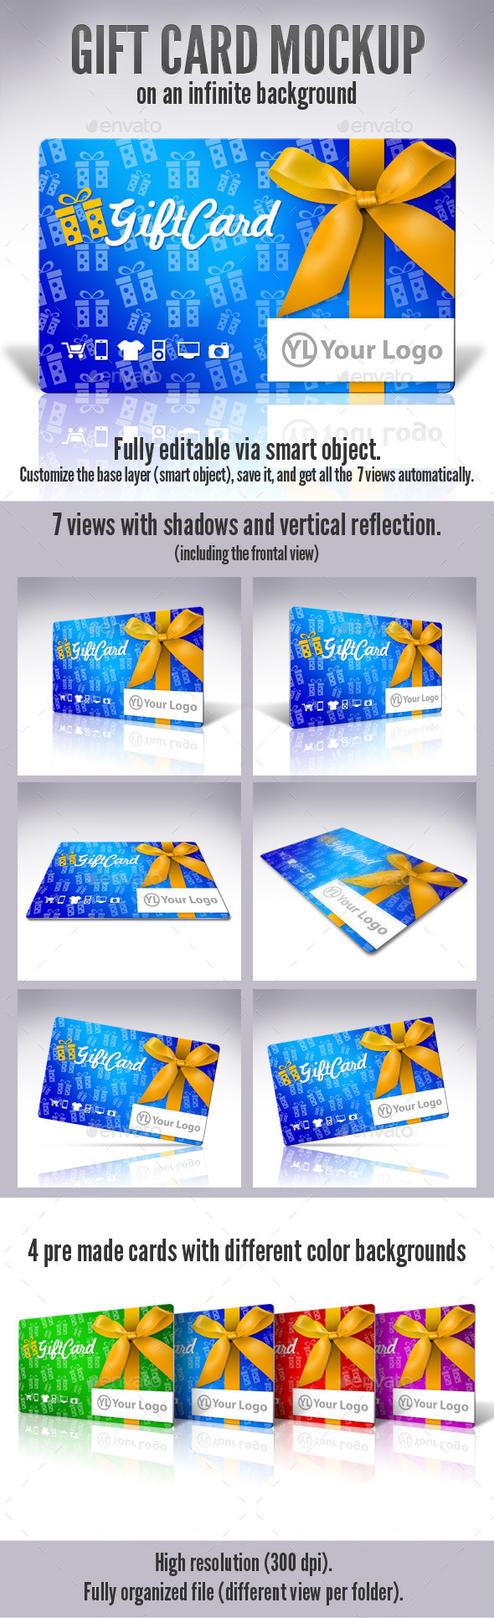 GiftCard Mock-up by doghead